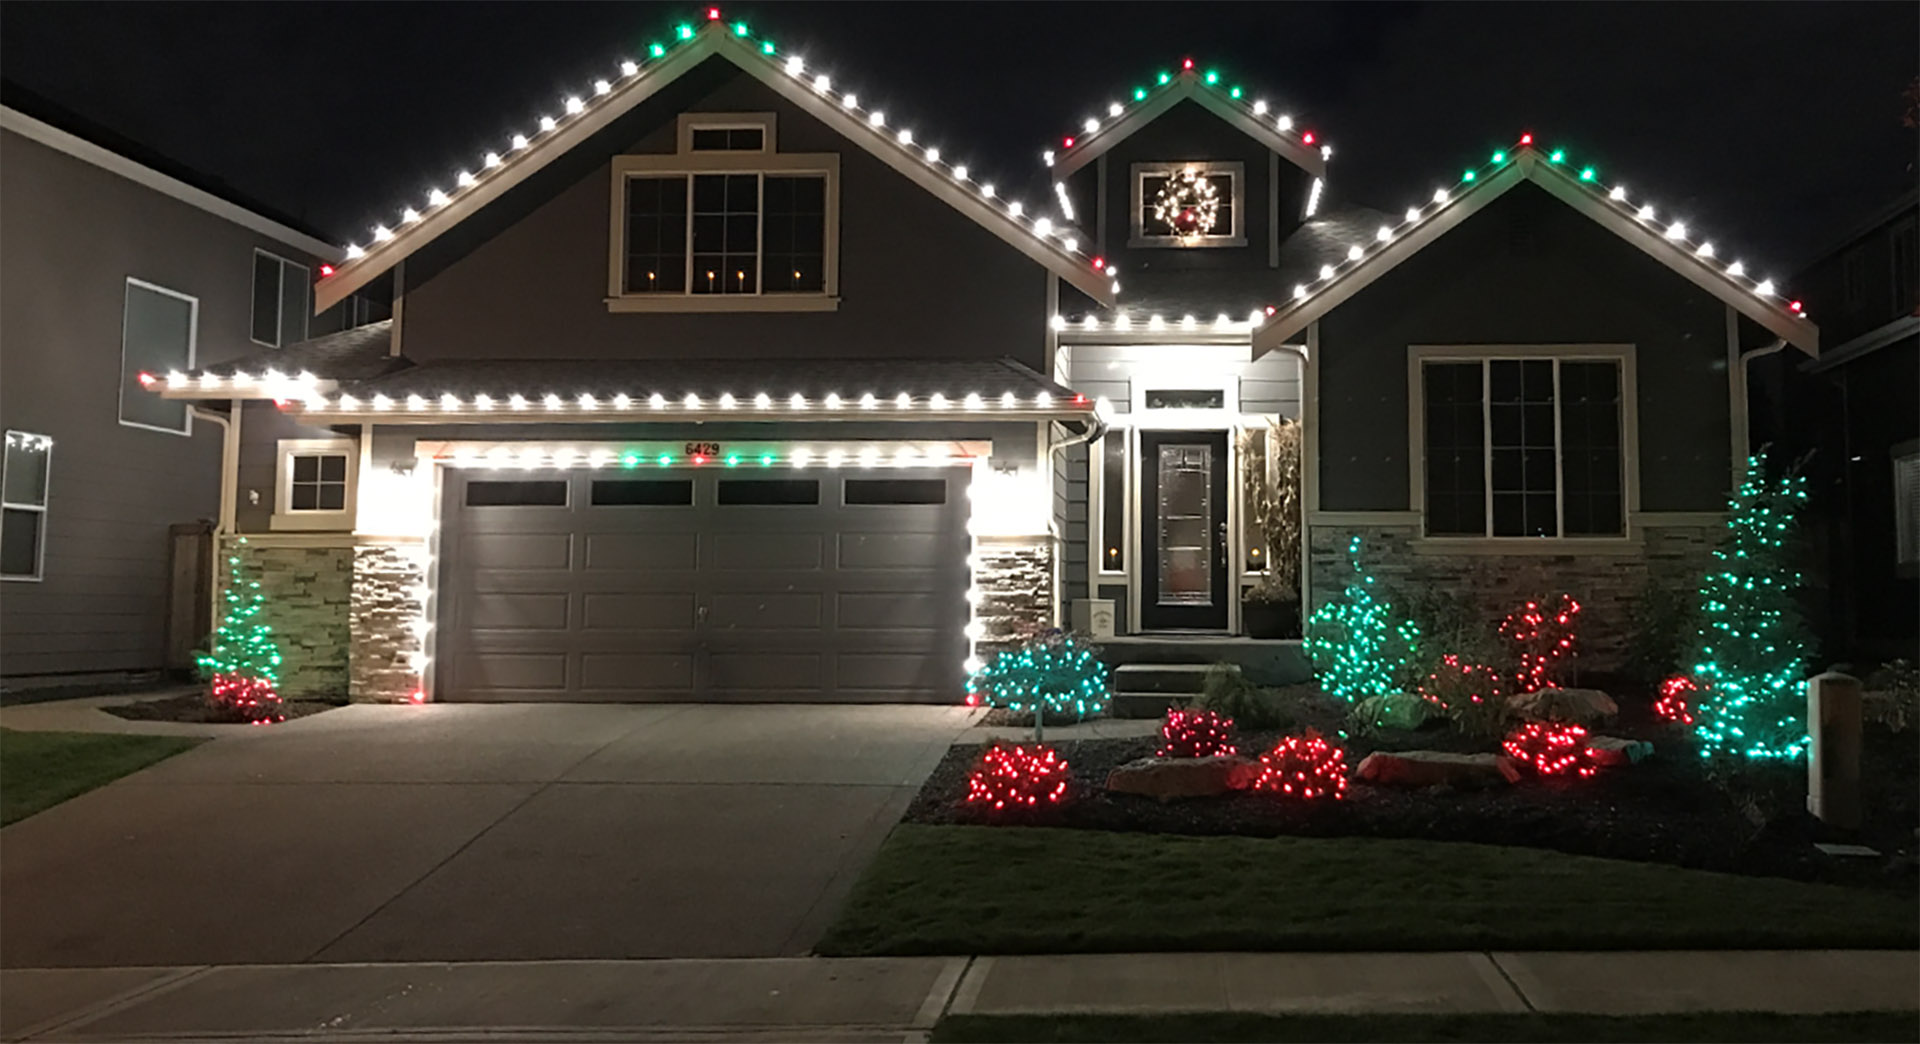 christmas lighting and decoration service in kent - Residential Christmas Decorating Service